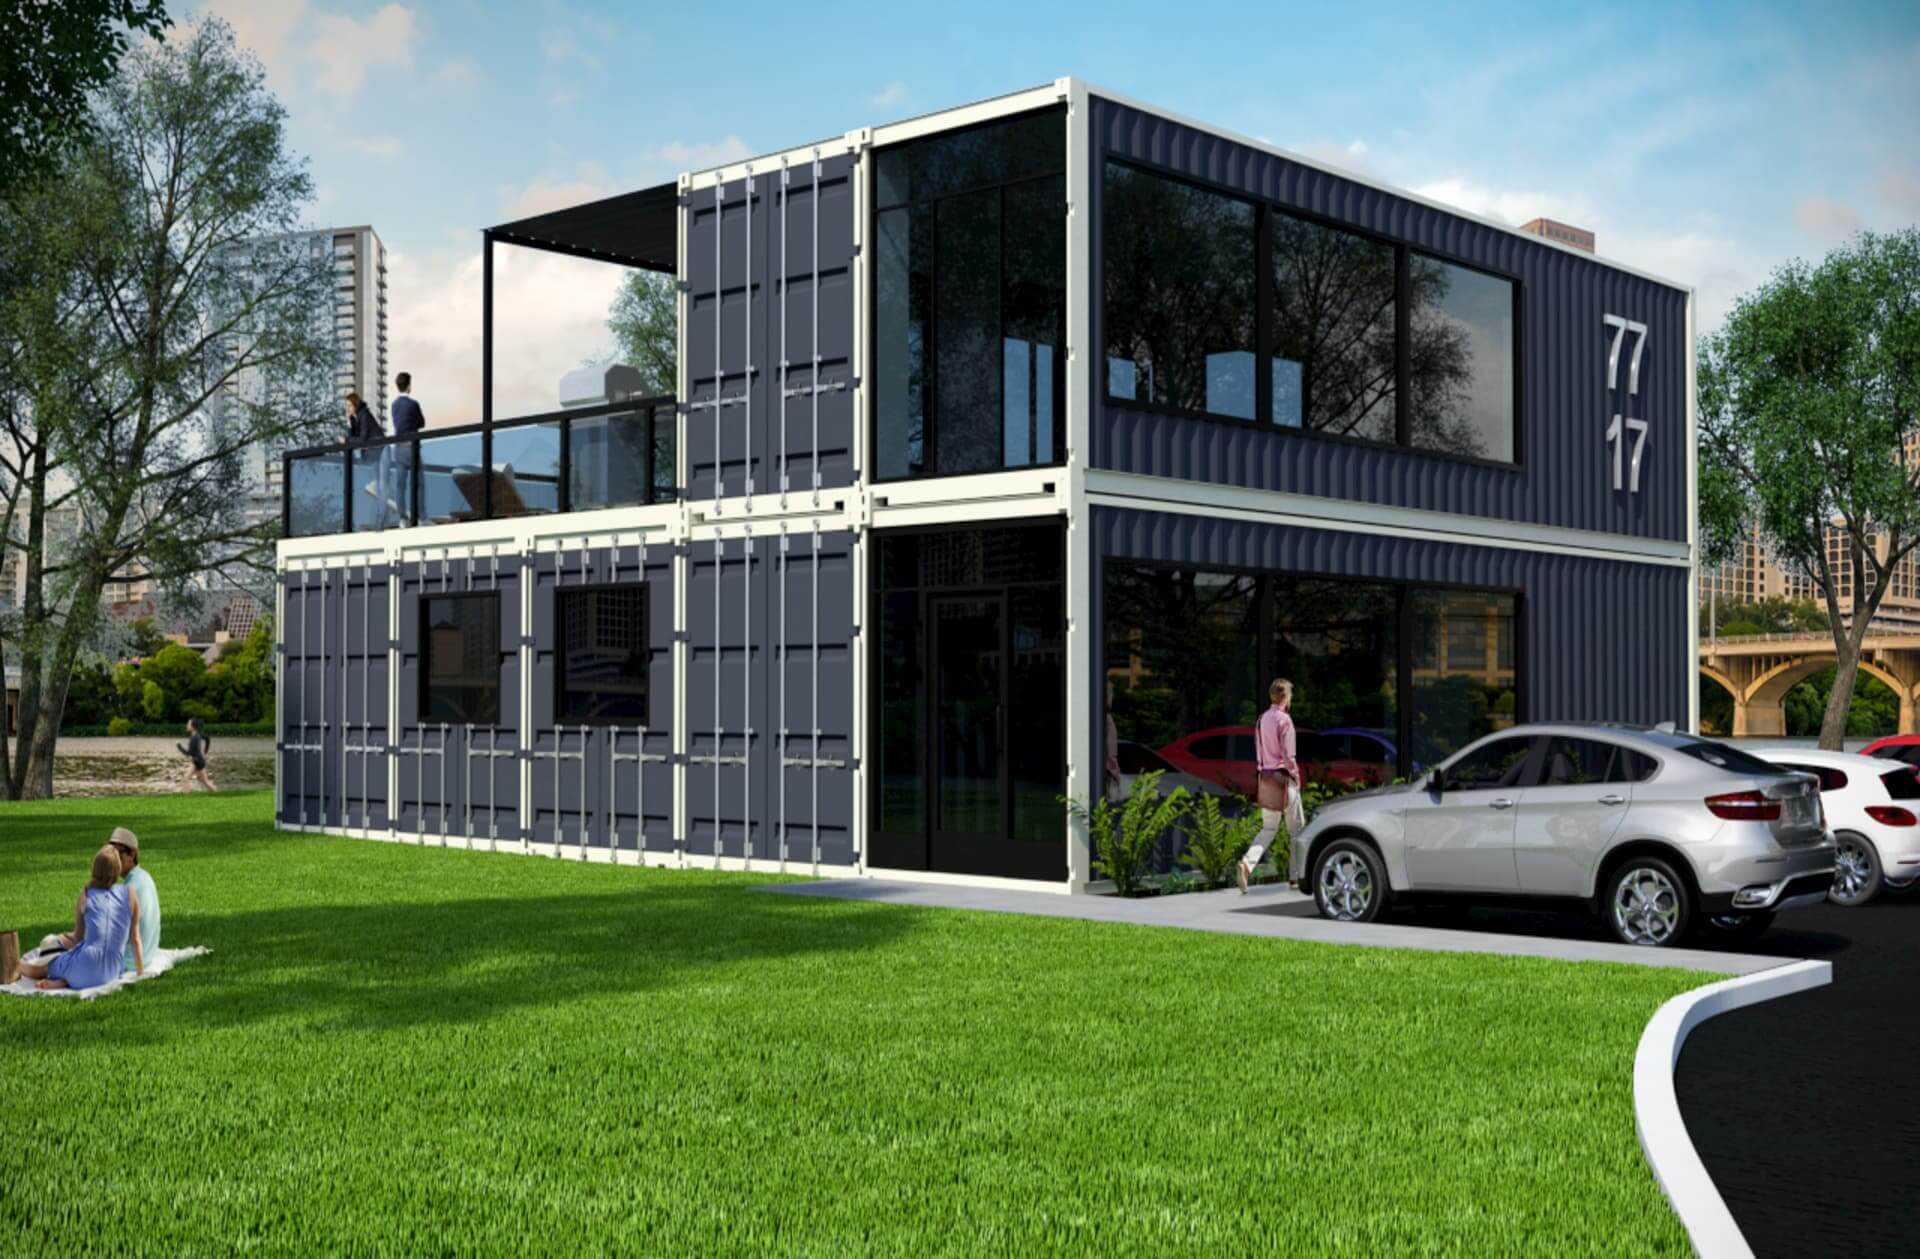 rendering-of-multi-container-building